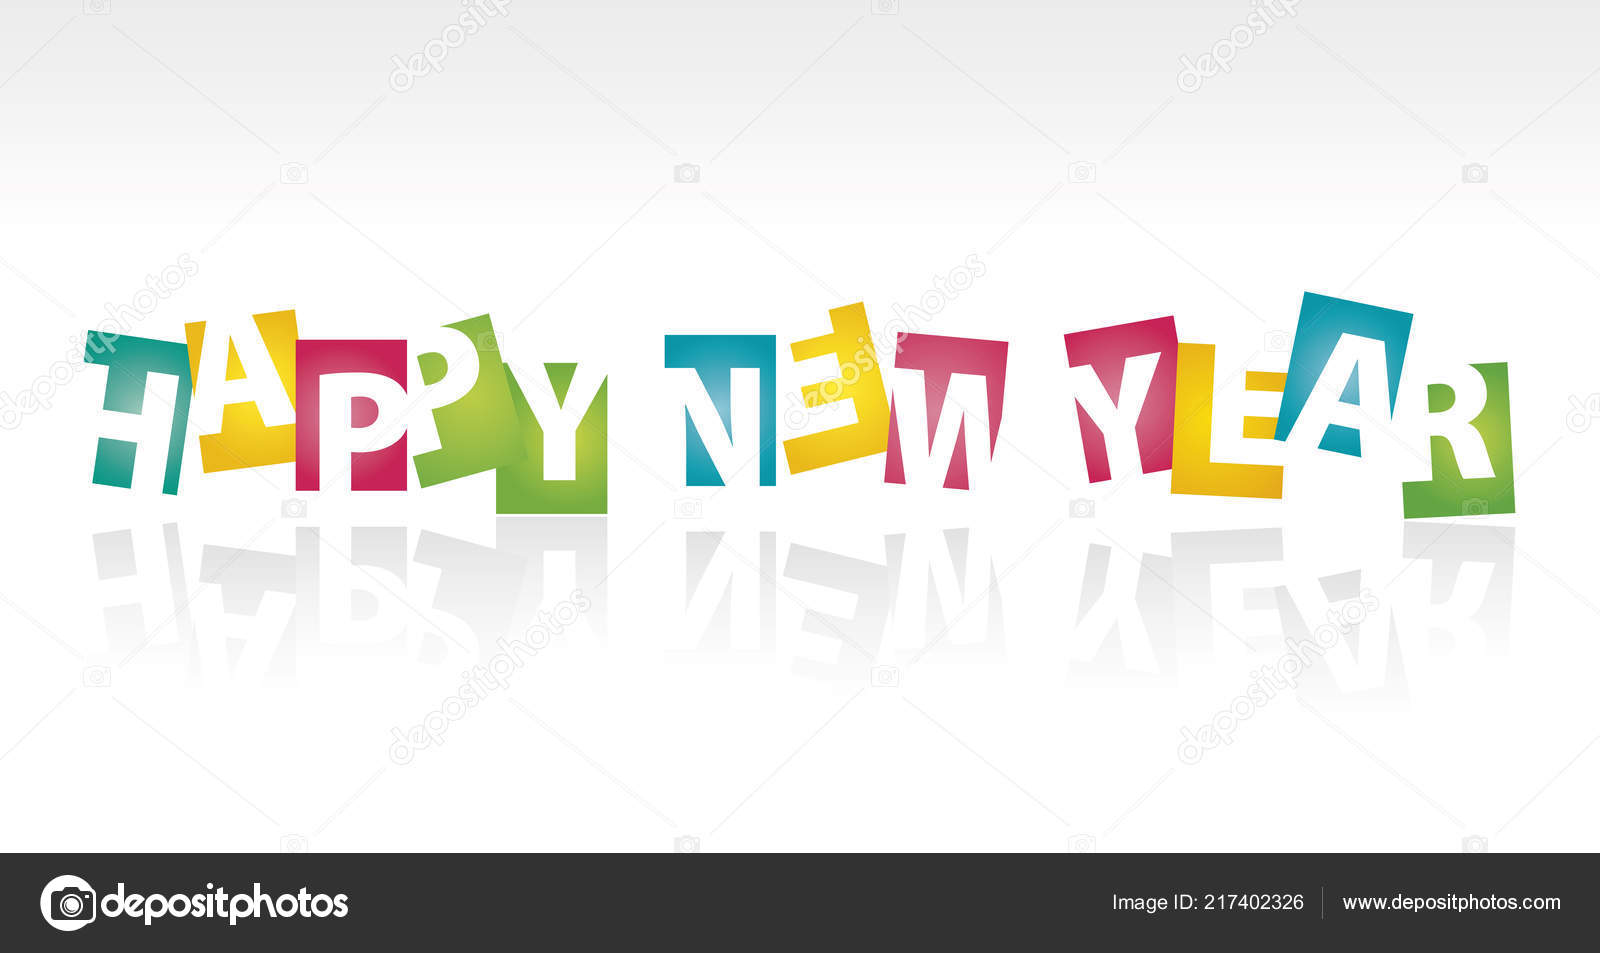 Happy new year 2019 color negative space letters shadows - New year 2019 color ...